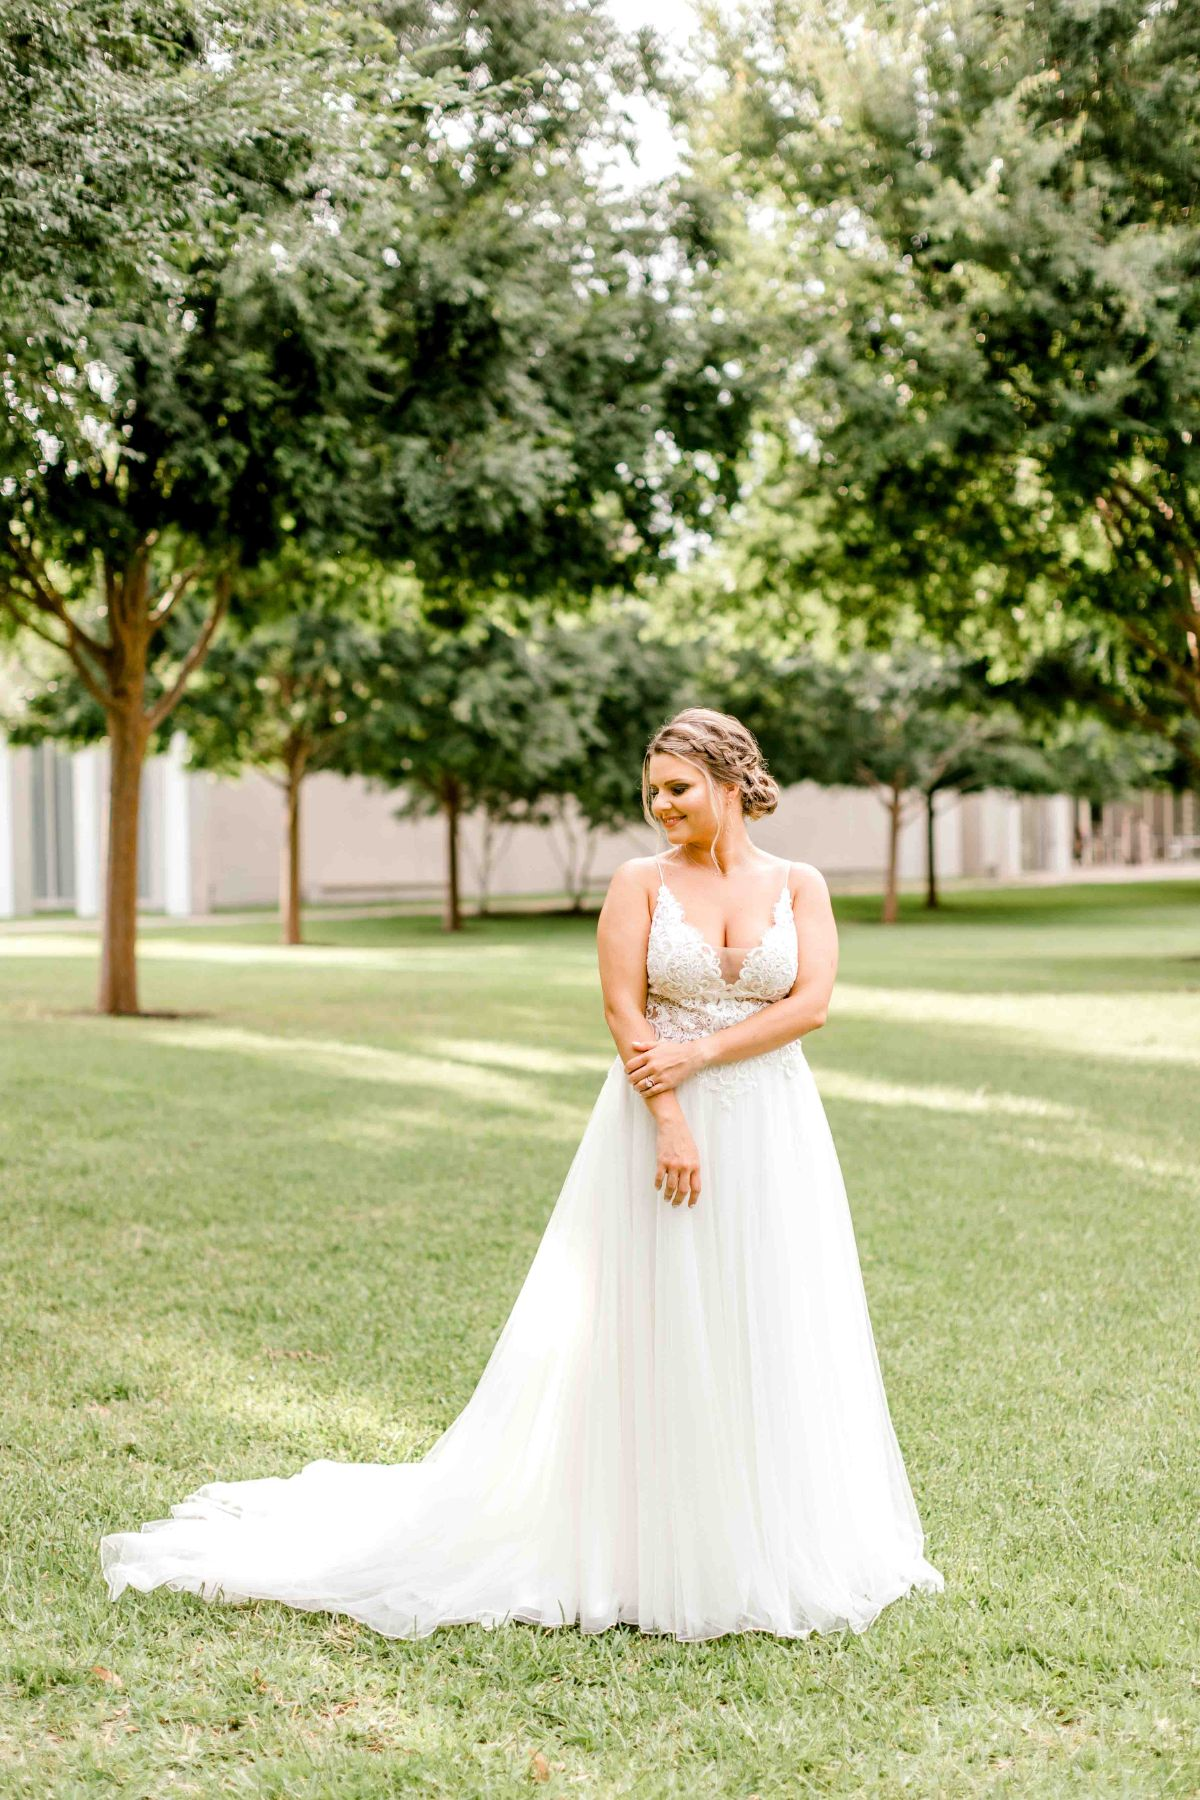 sarah-bridals-fort-worth-wedding-photographer-01.jpg